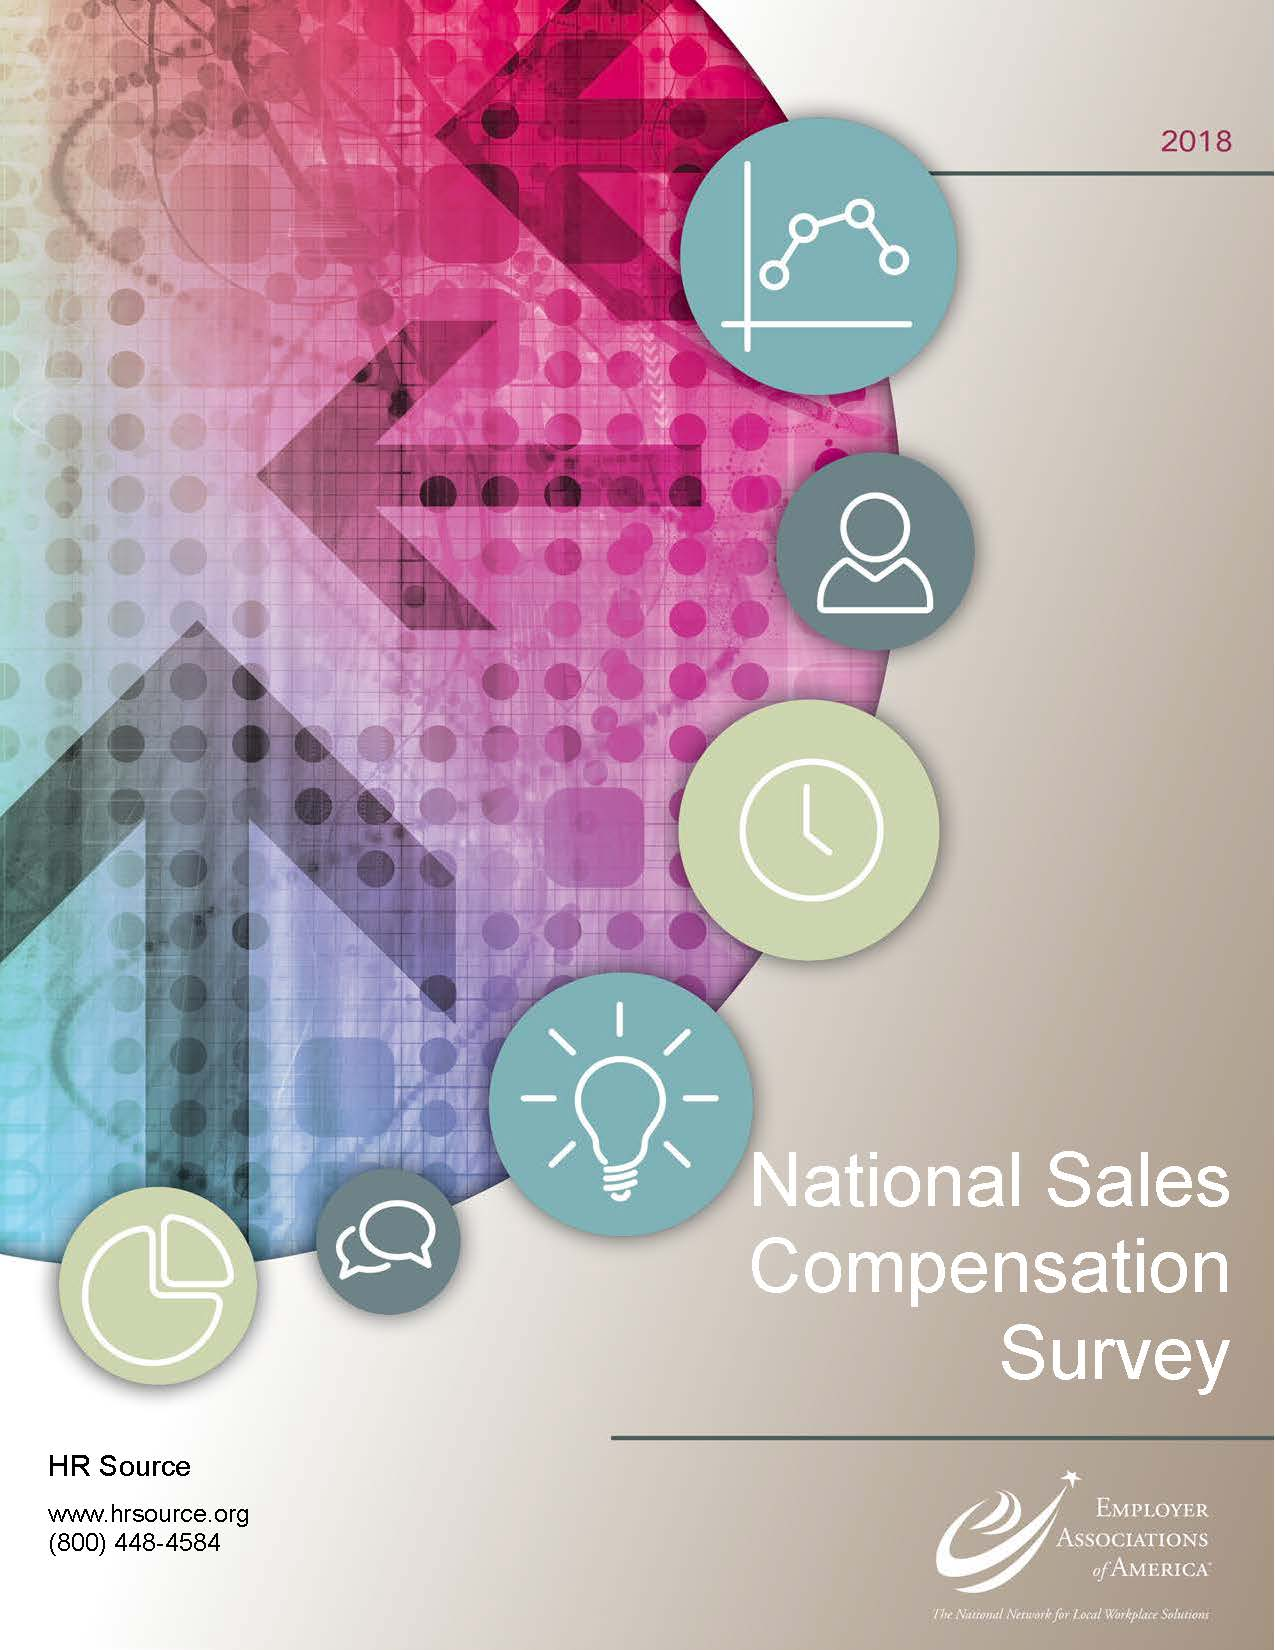 2018 National Sales Compensation Survey